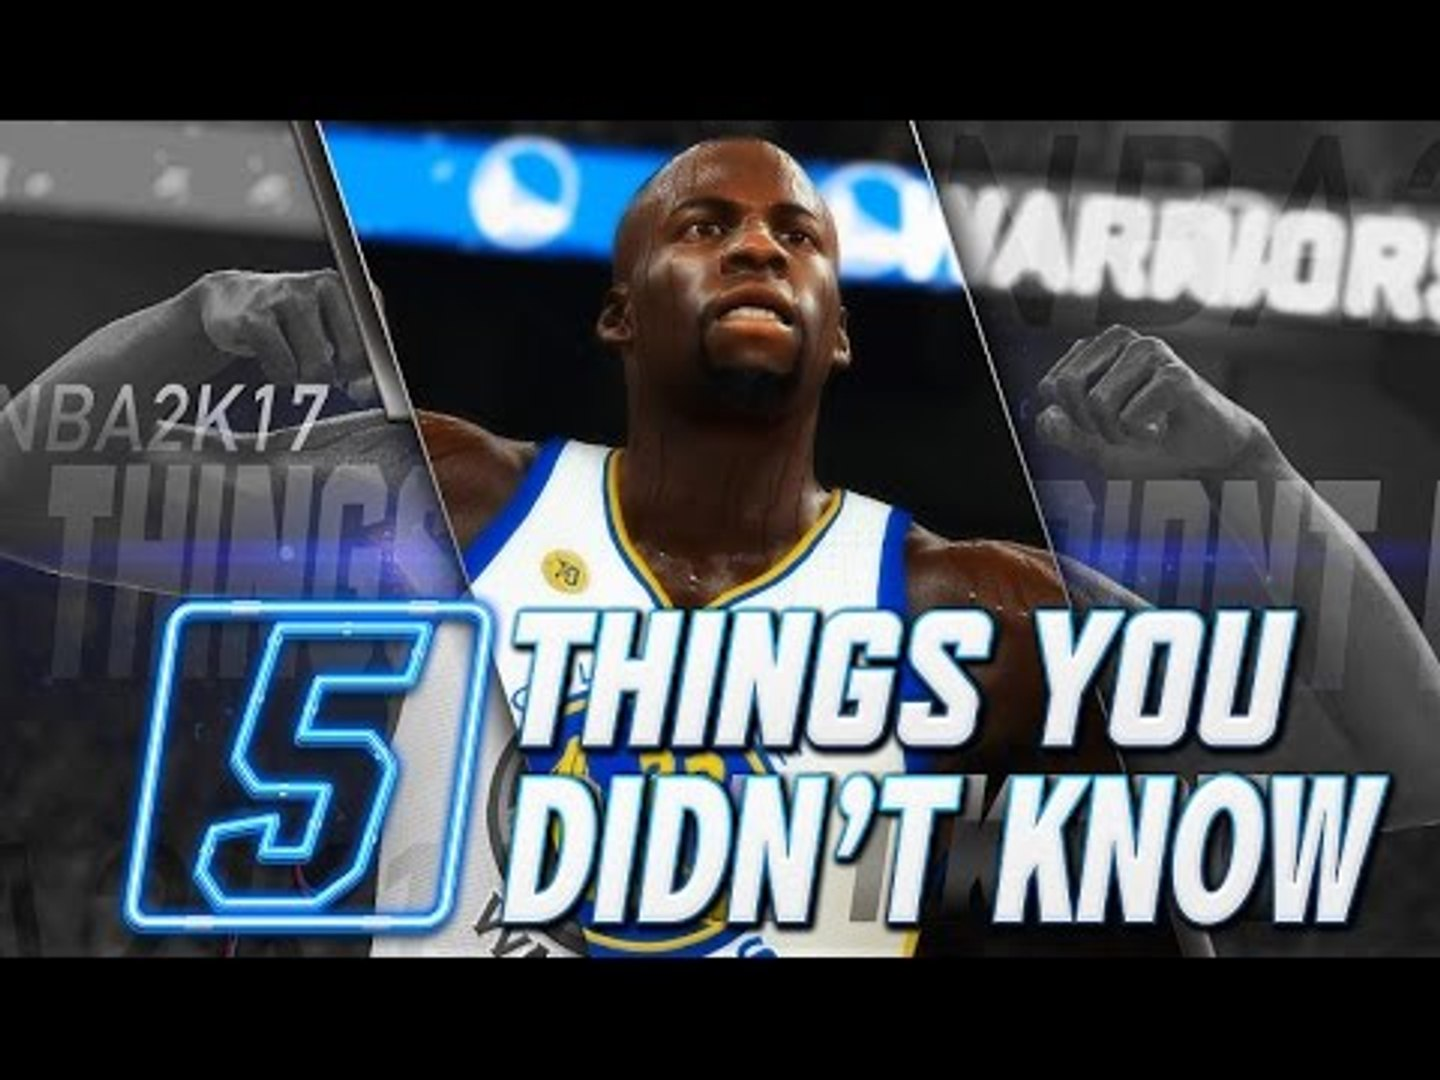 NBA 2K17 TOP 5 THINGS YOU DIDN'T KNOW! Badges, Gameplay, Tips & More!